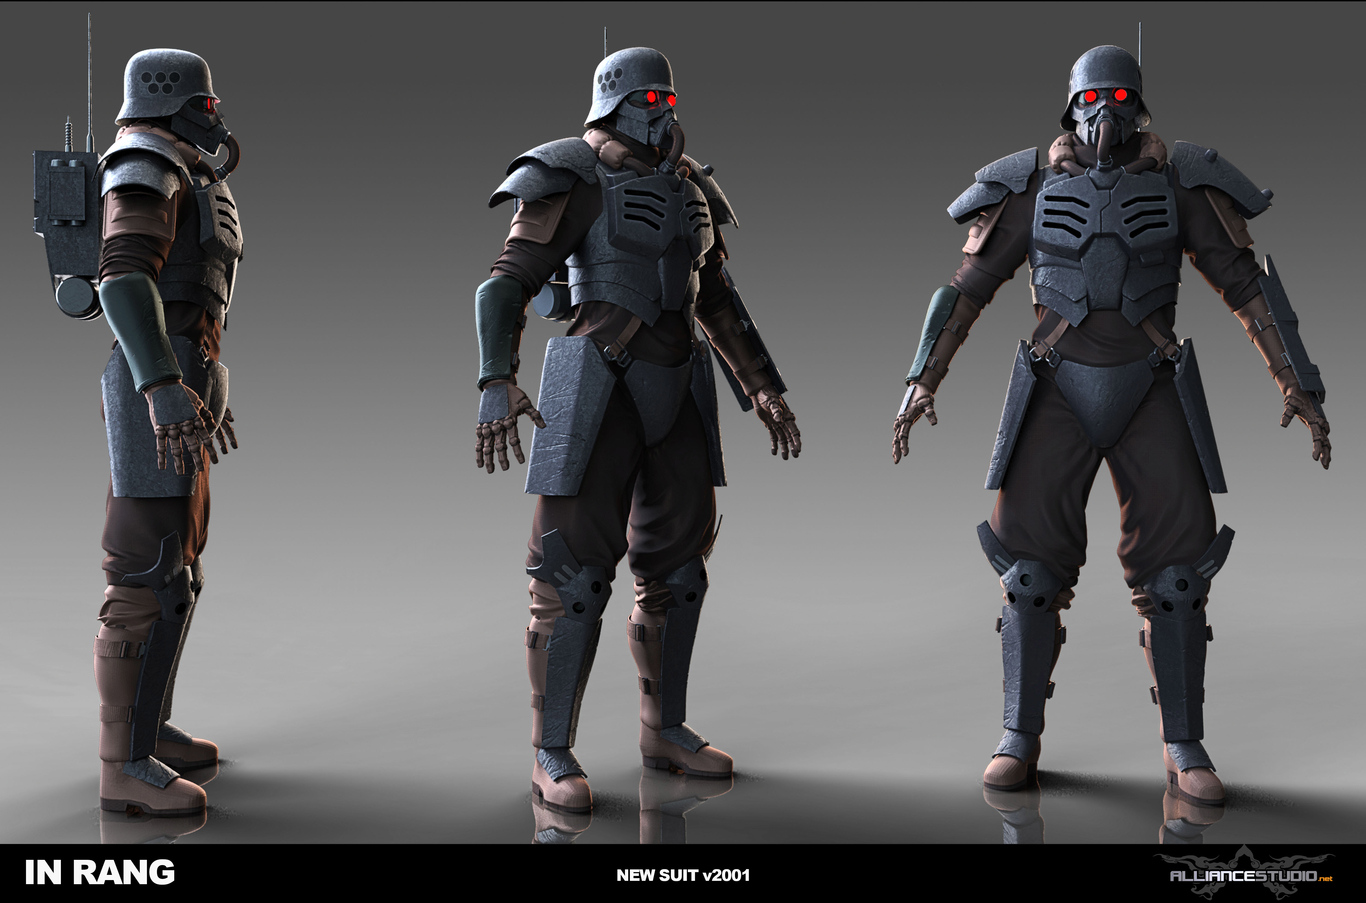 Illang: The Wolf Brigade (2018) - Original Suit Concept by